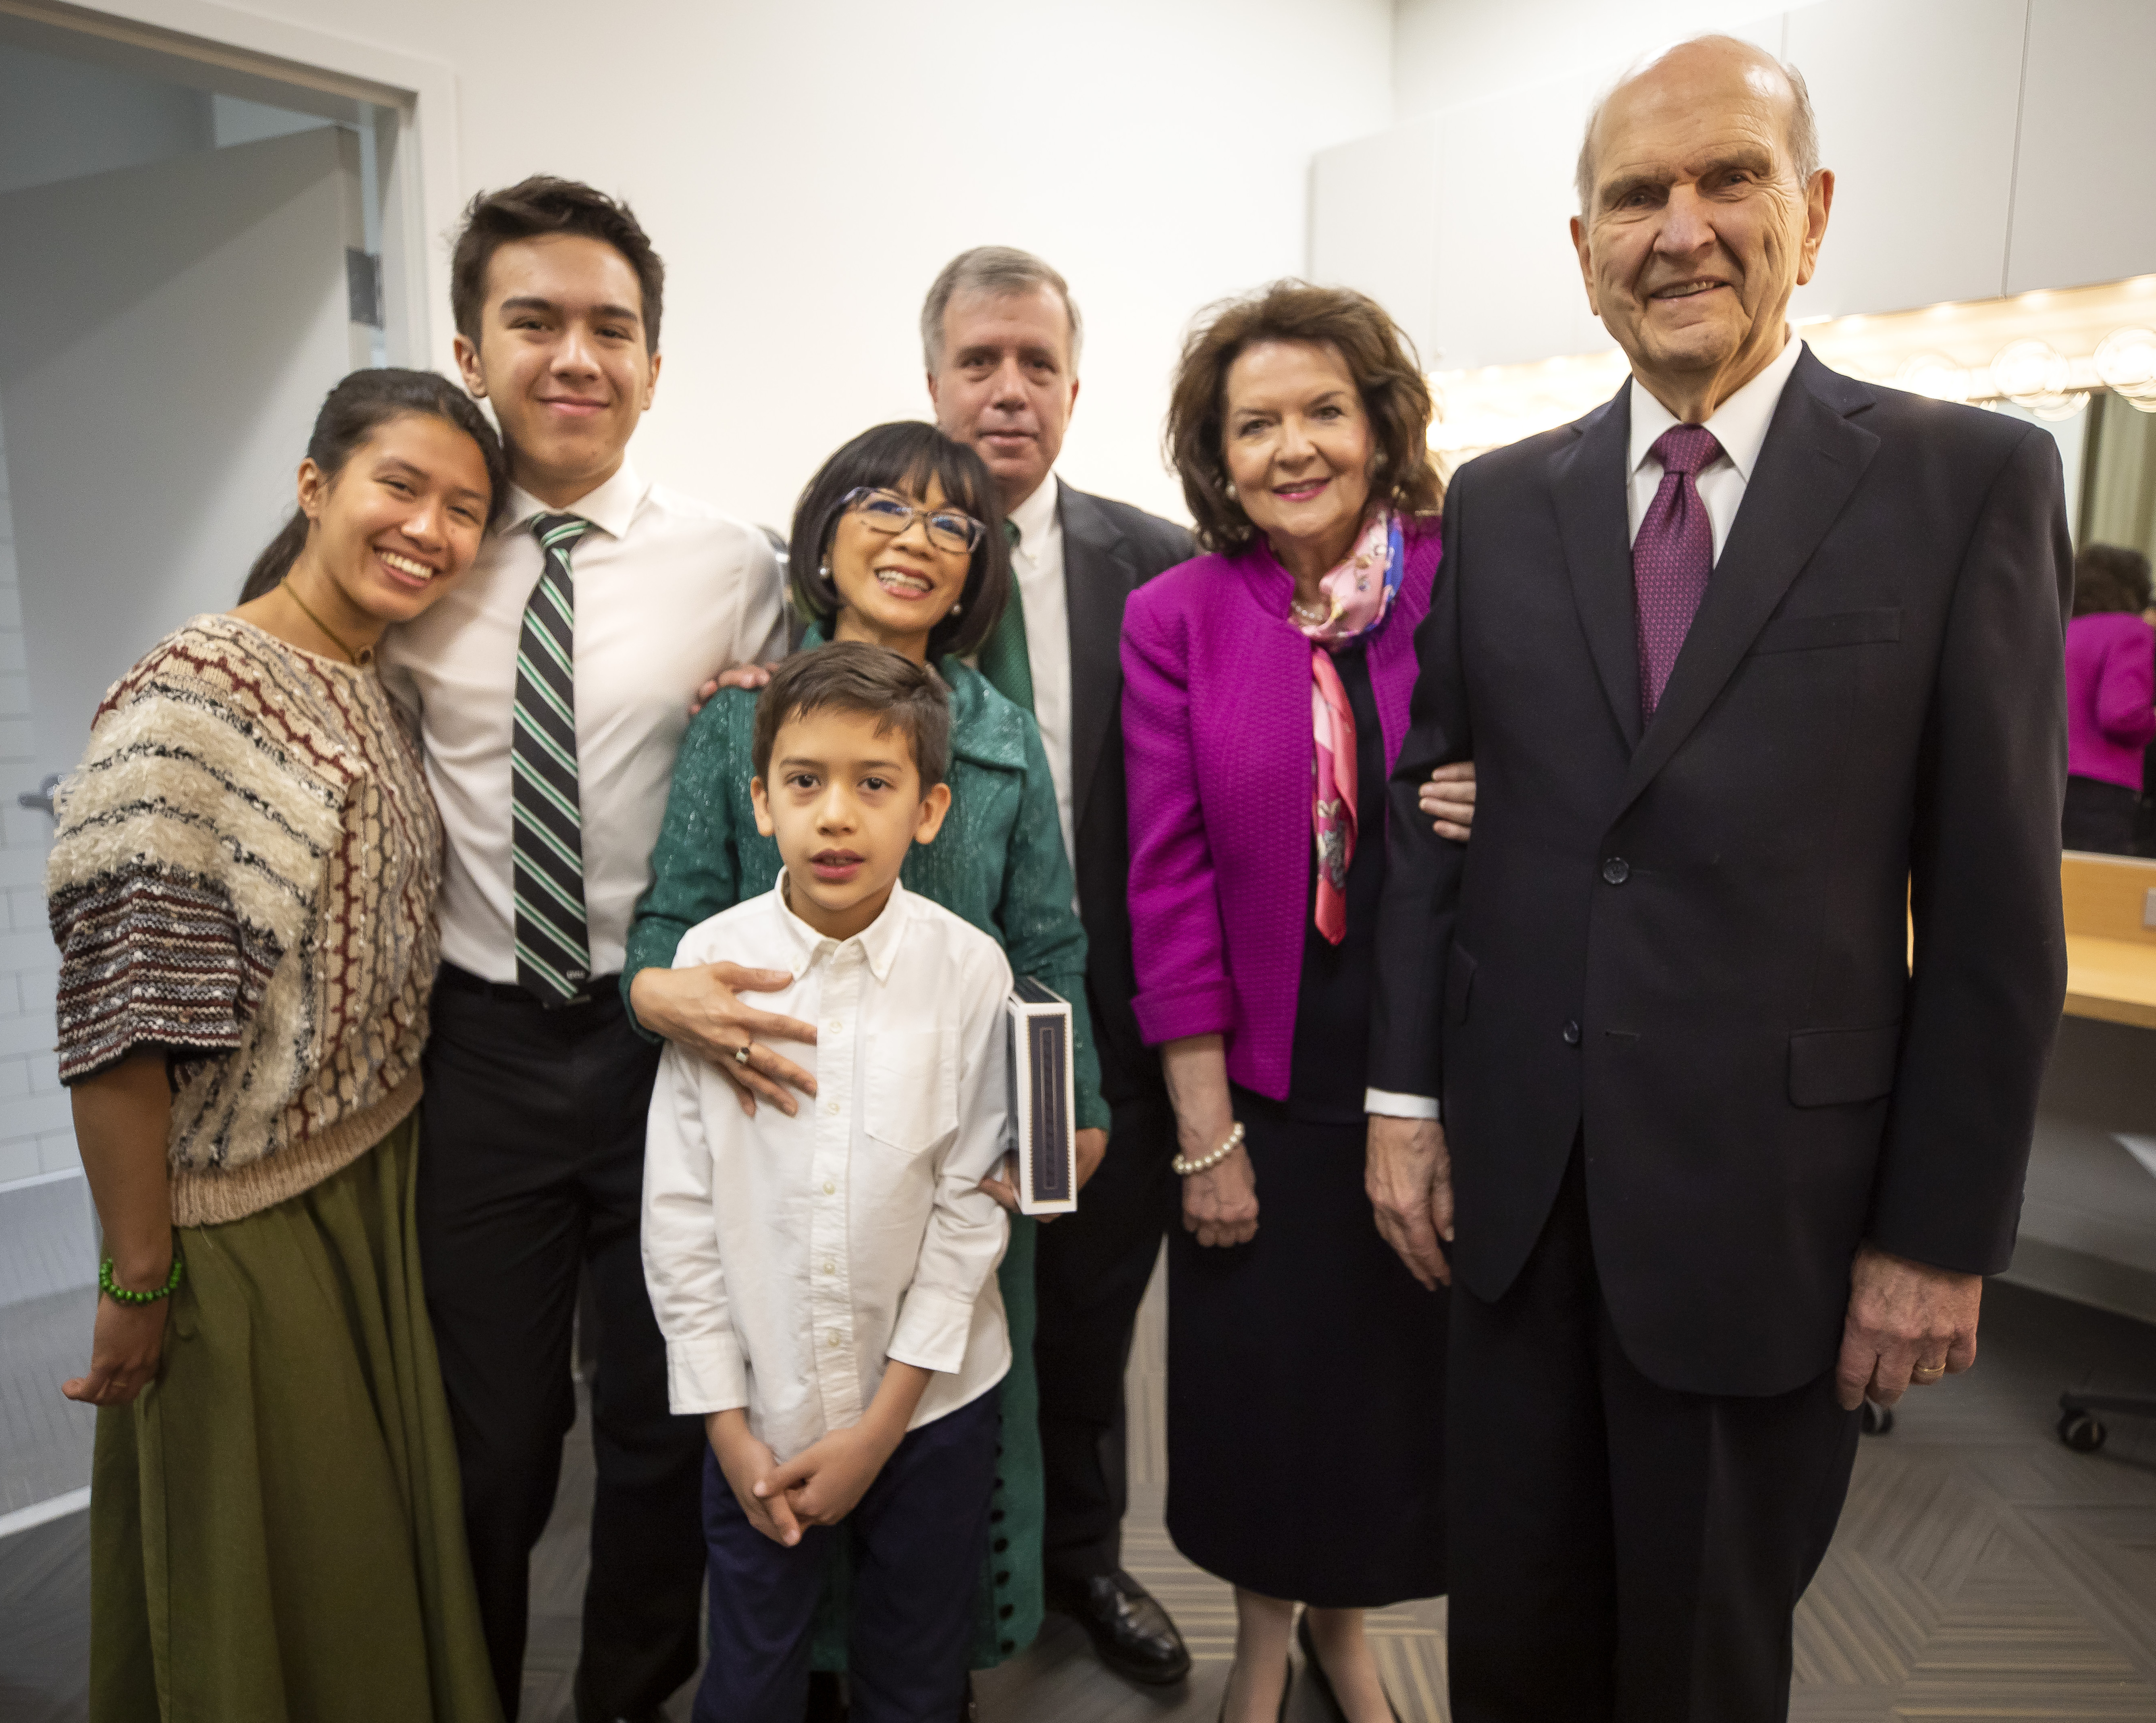 President Russell M. Nelson and Sister Wendy W. Nelson meet with UVU President Astrid Tuminez and her family following the Presidential Inauguration in the Concert Hall of the Noorda Center for the Performing Arts, on the Campus of Utah Valley University in Orem, Utah Wednesday, March 27, 2019. From left, daughter Michal Francis Tuminez Tolk, Whitman David Tuminez Tolk, Leo Emerson Tuminez Tolk, President Astrid Tuminez, Jeffrey Tolk, Sister Wendy W. Nelson and President Russell M. Nelson.